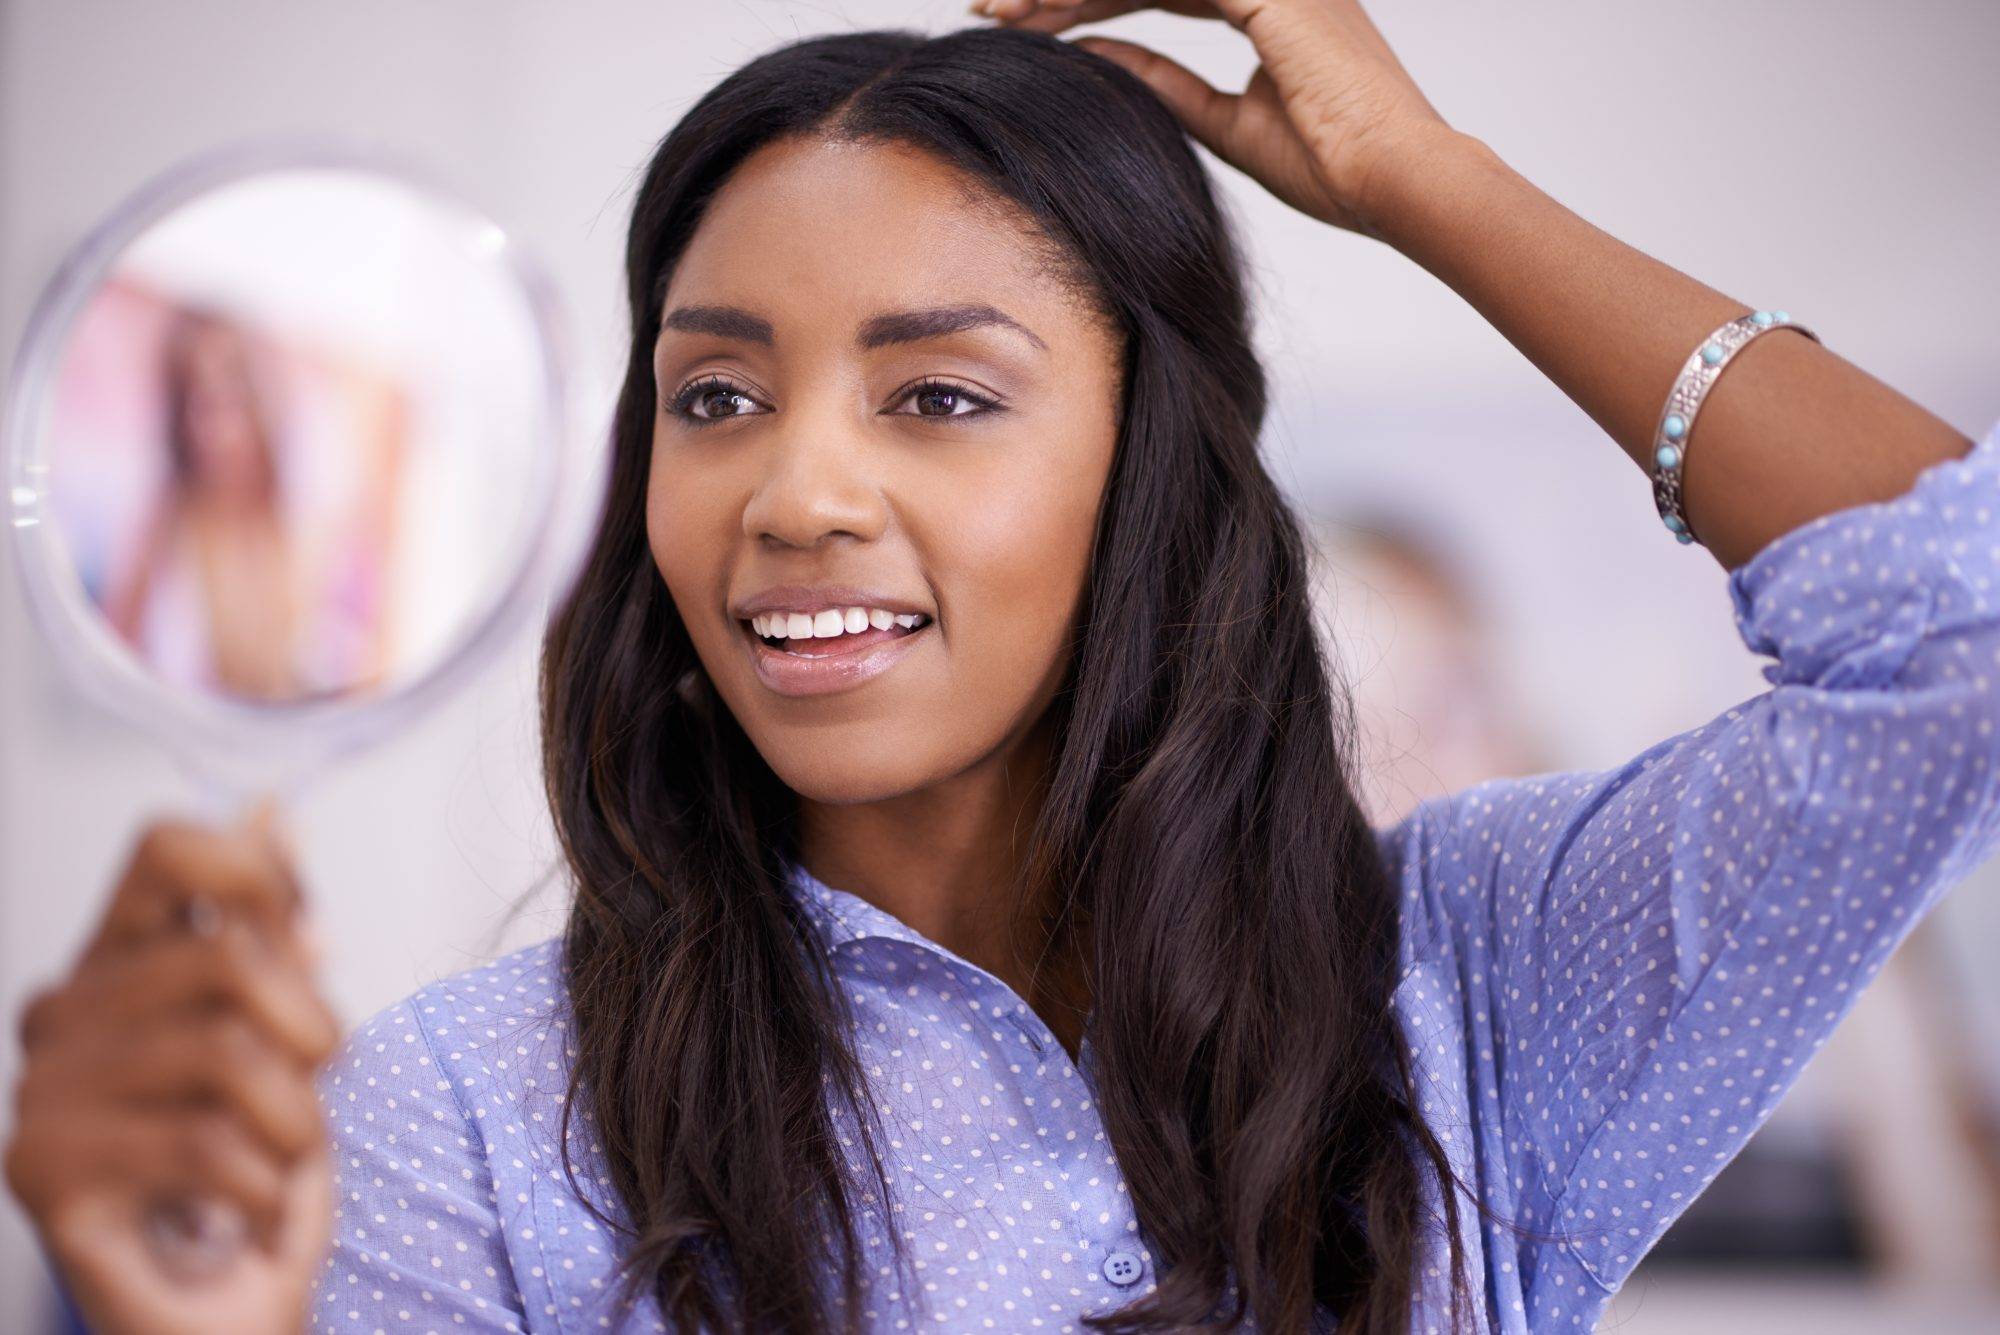 Why Everyone Loves a Good Hair Day